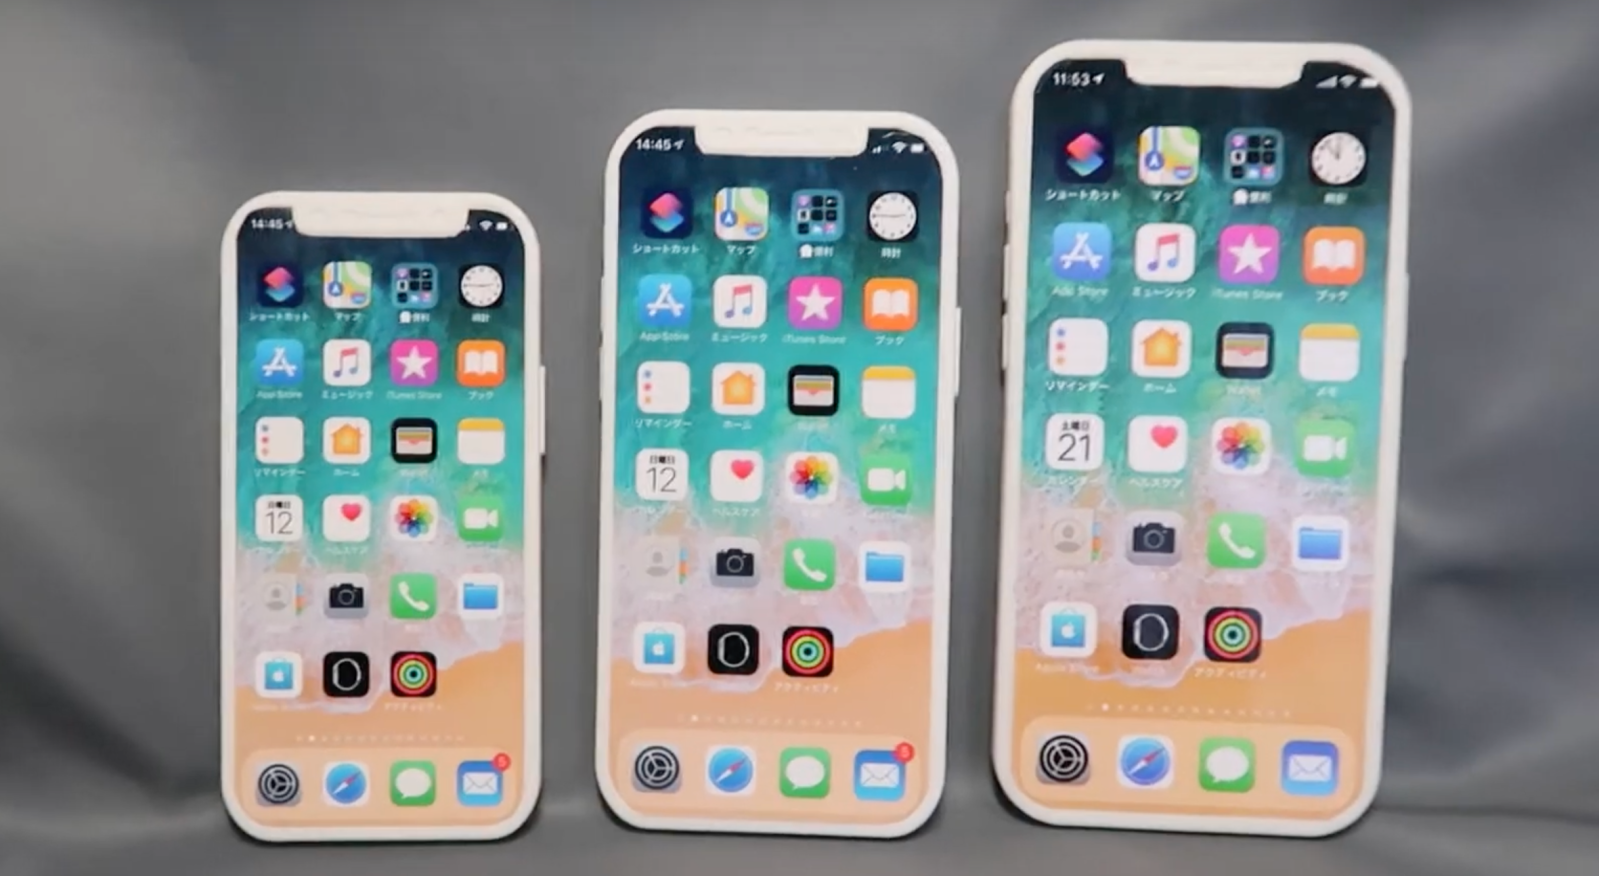 Video: Latest mockups compare relative sizes of rumored iPhone 12 lineup